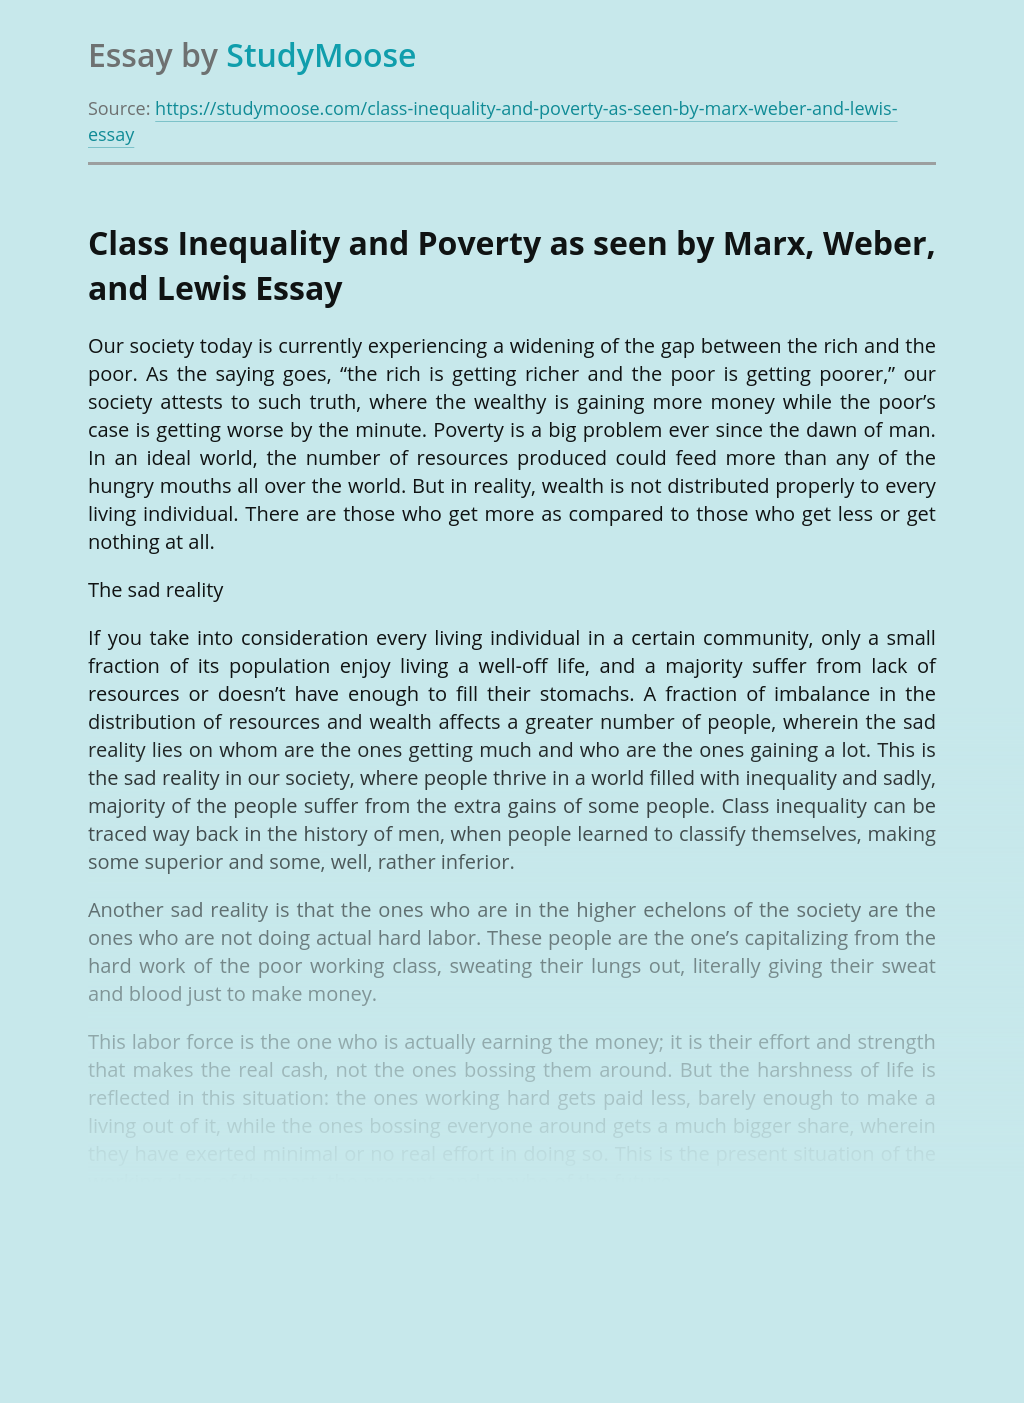 Class Inequality and Poverty as seen by Marx, Weber, and Lewis